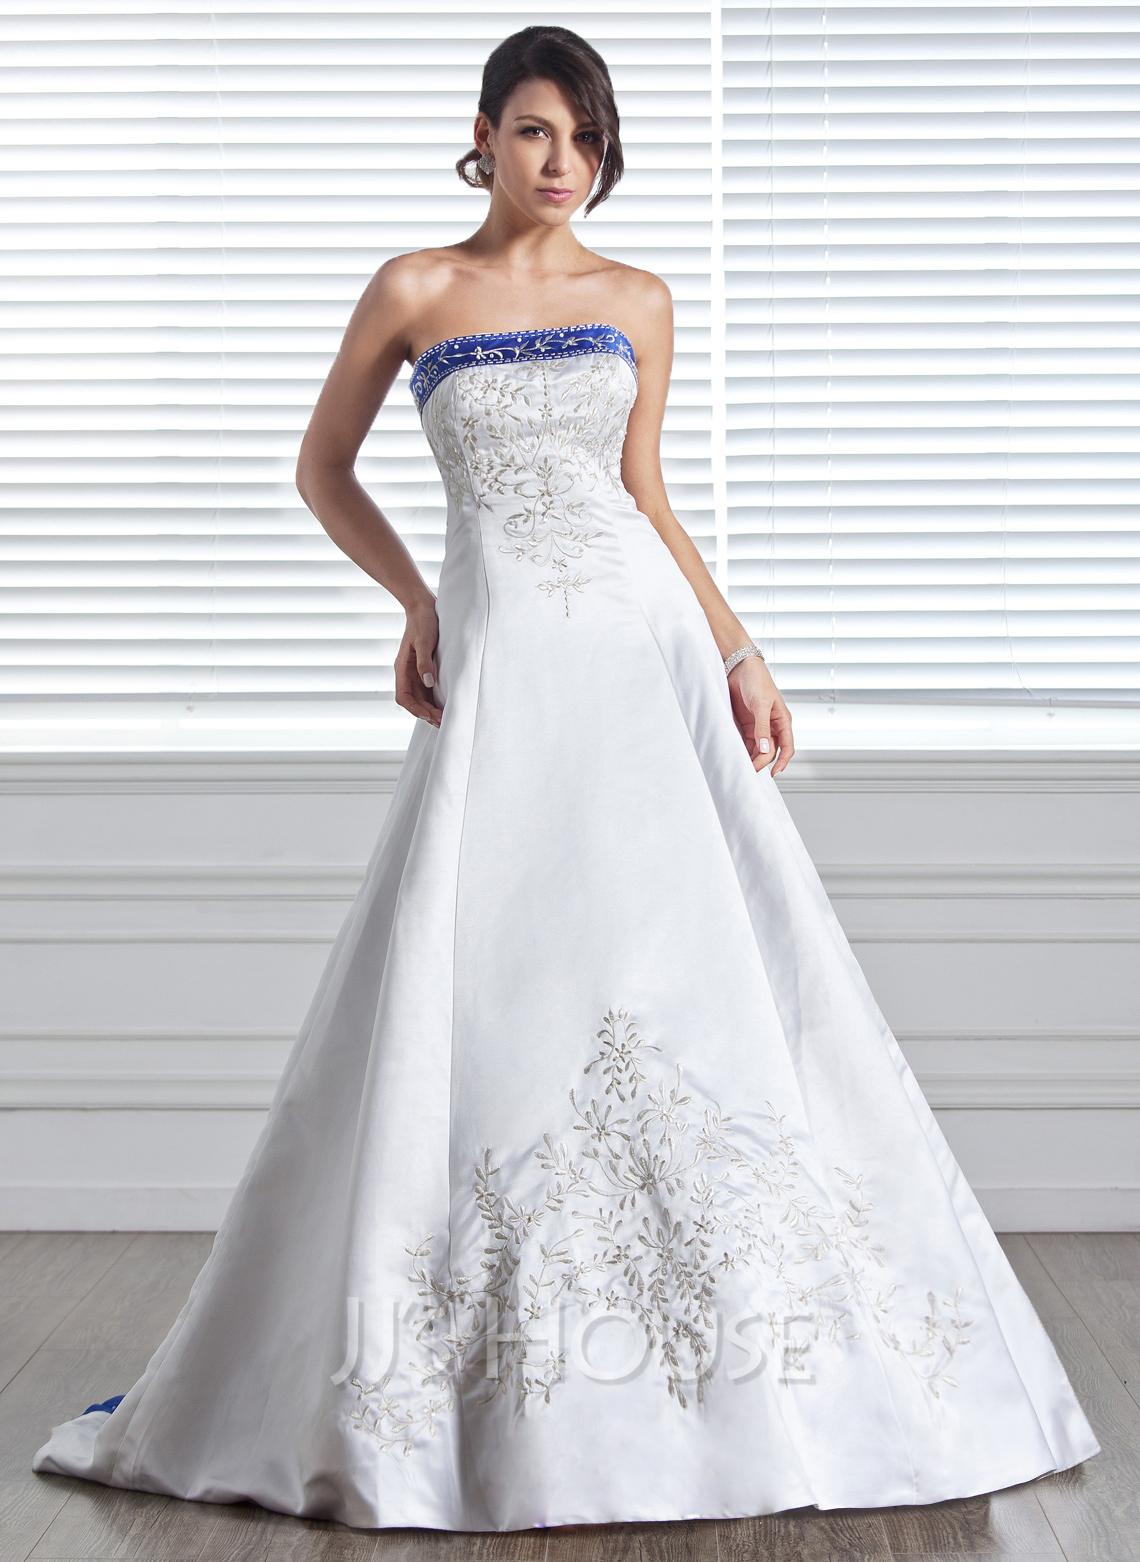 A Line Princess Strapless Court Train Satin Wedding Dress With Embroidered Sash Beading g jjshouse wedding dress Home Wedding Dresses Loading zoom